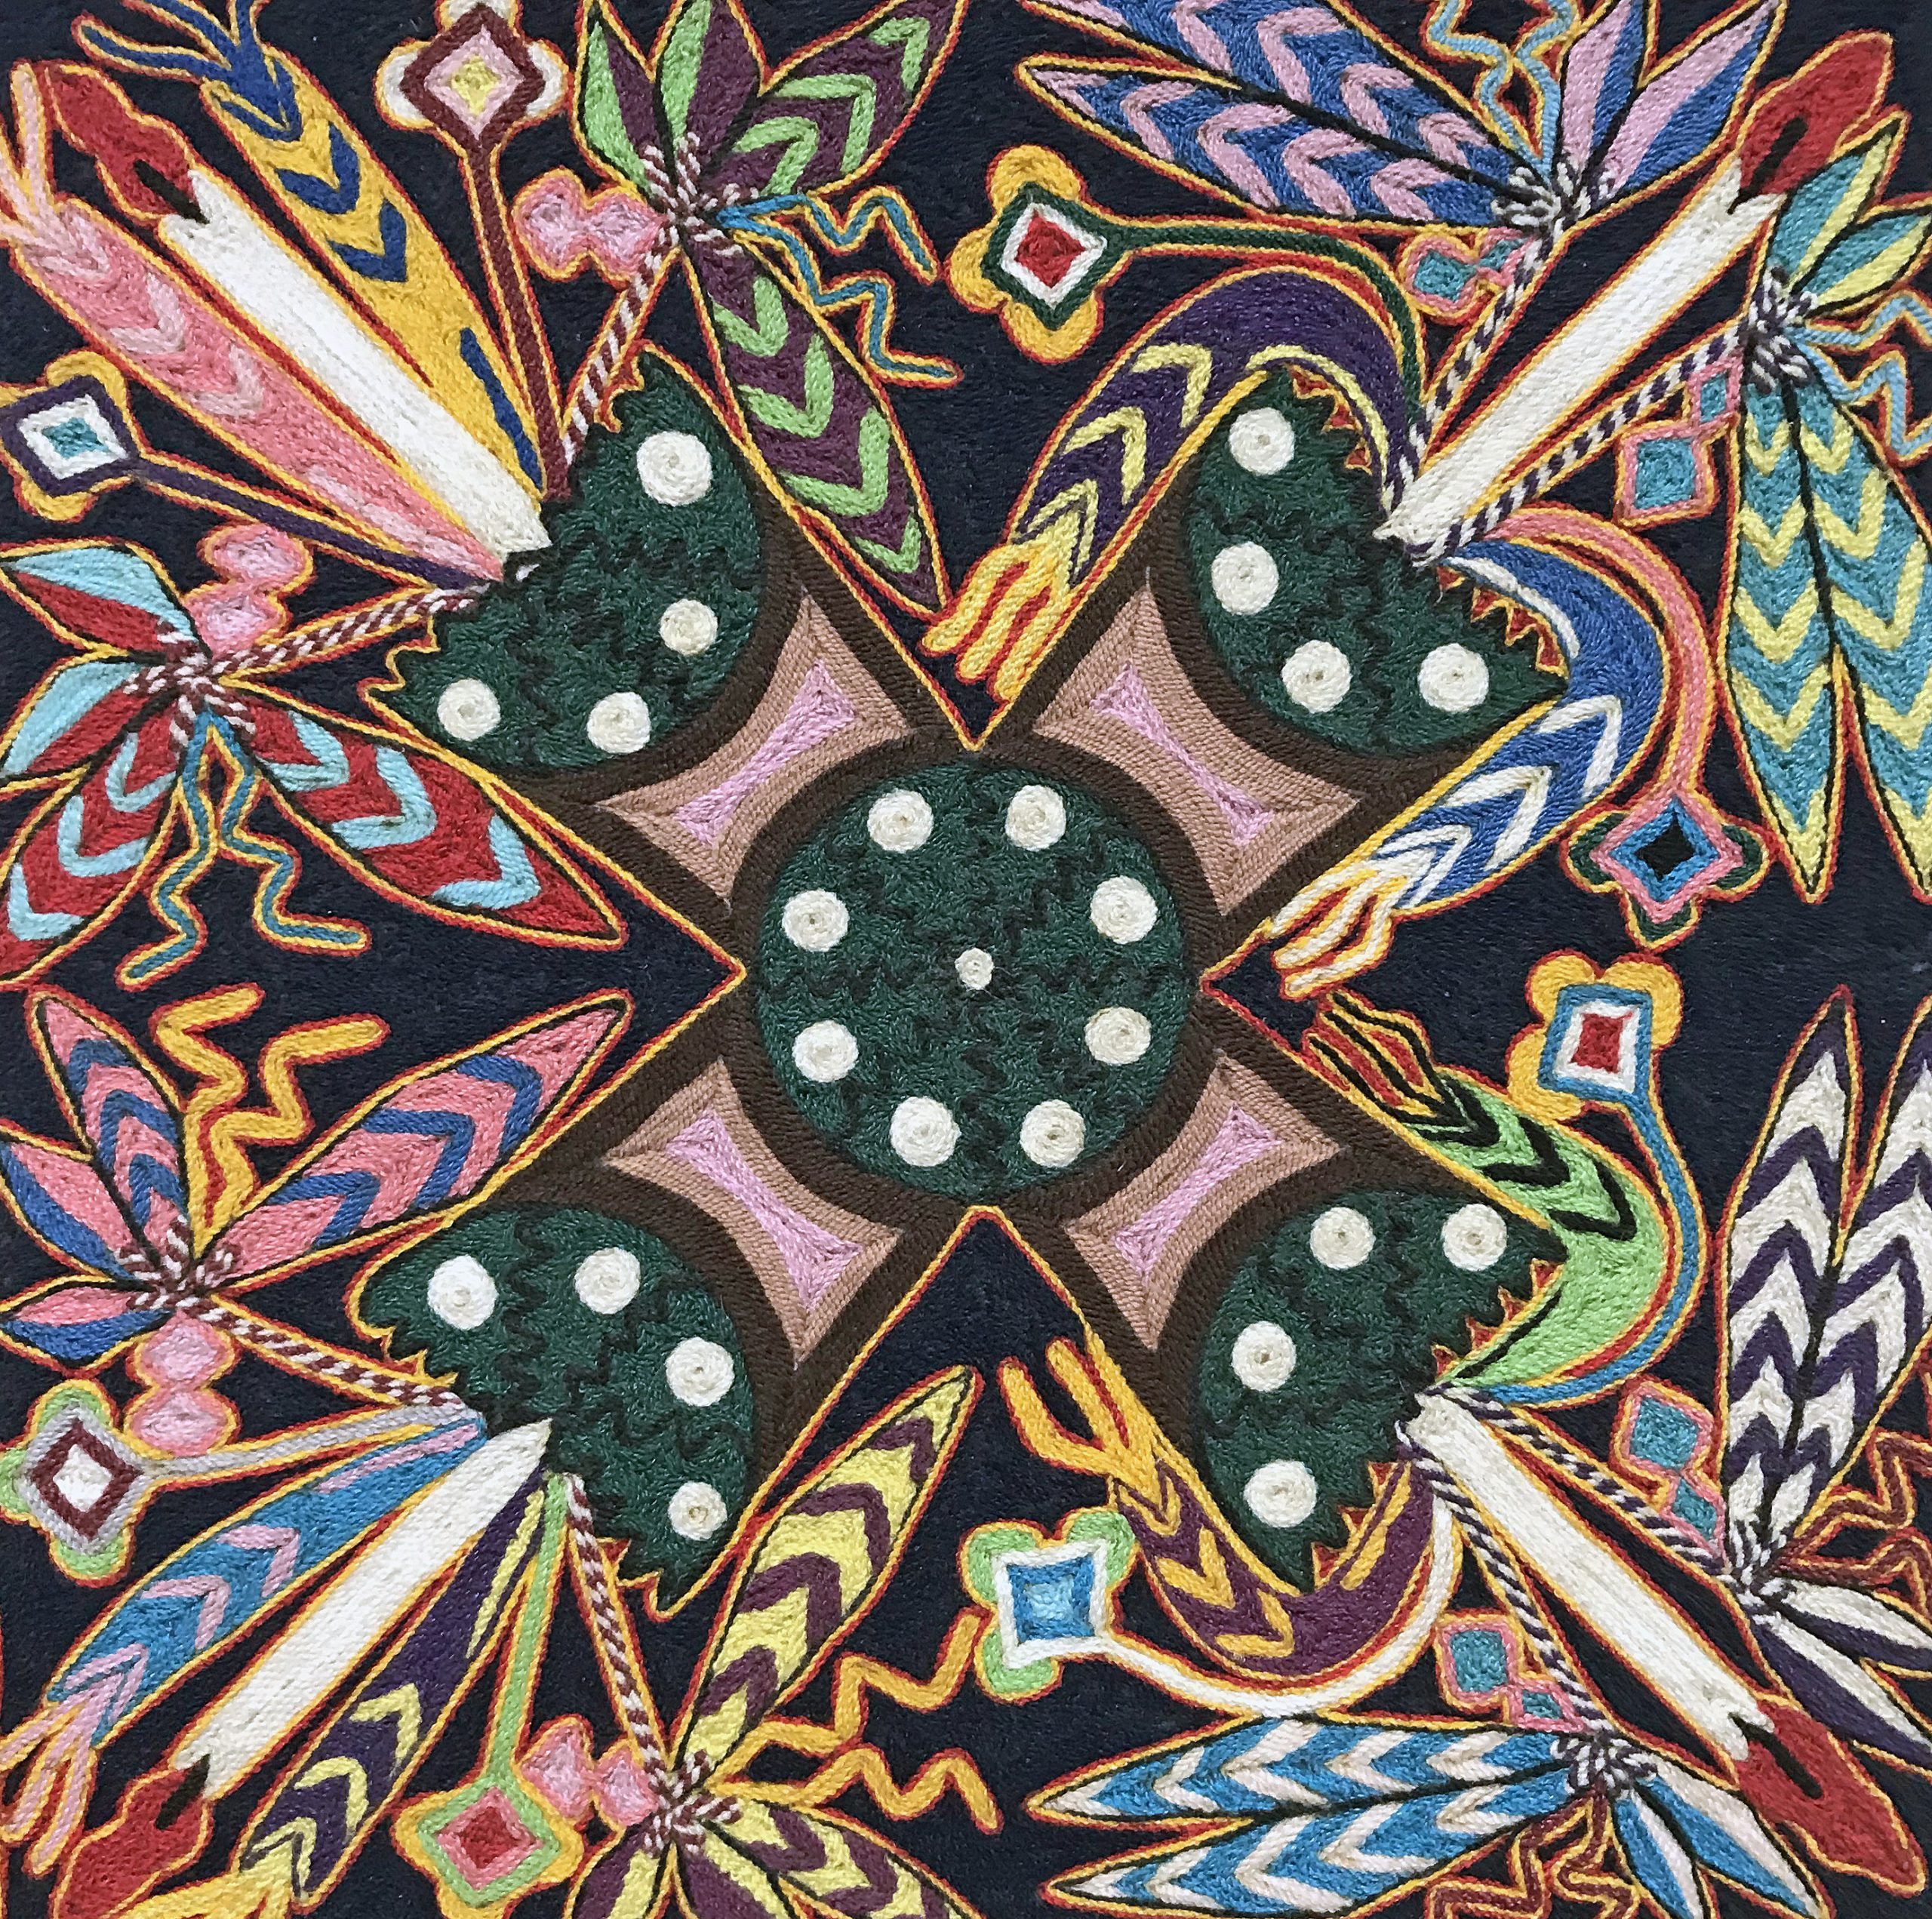 Huichol Yarn Pinting Carlson PS: A Huichol Indian yarn painting of the sacred peyote cactus, Lophophora williamsii. Note the richness of the colors that appear in the painting, which offers a sense of the visions seen during the ritual use of peyote.